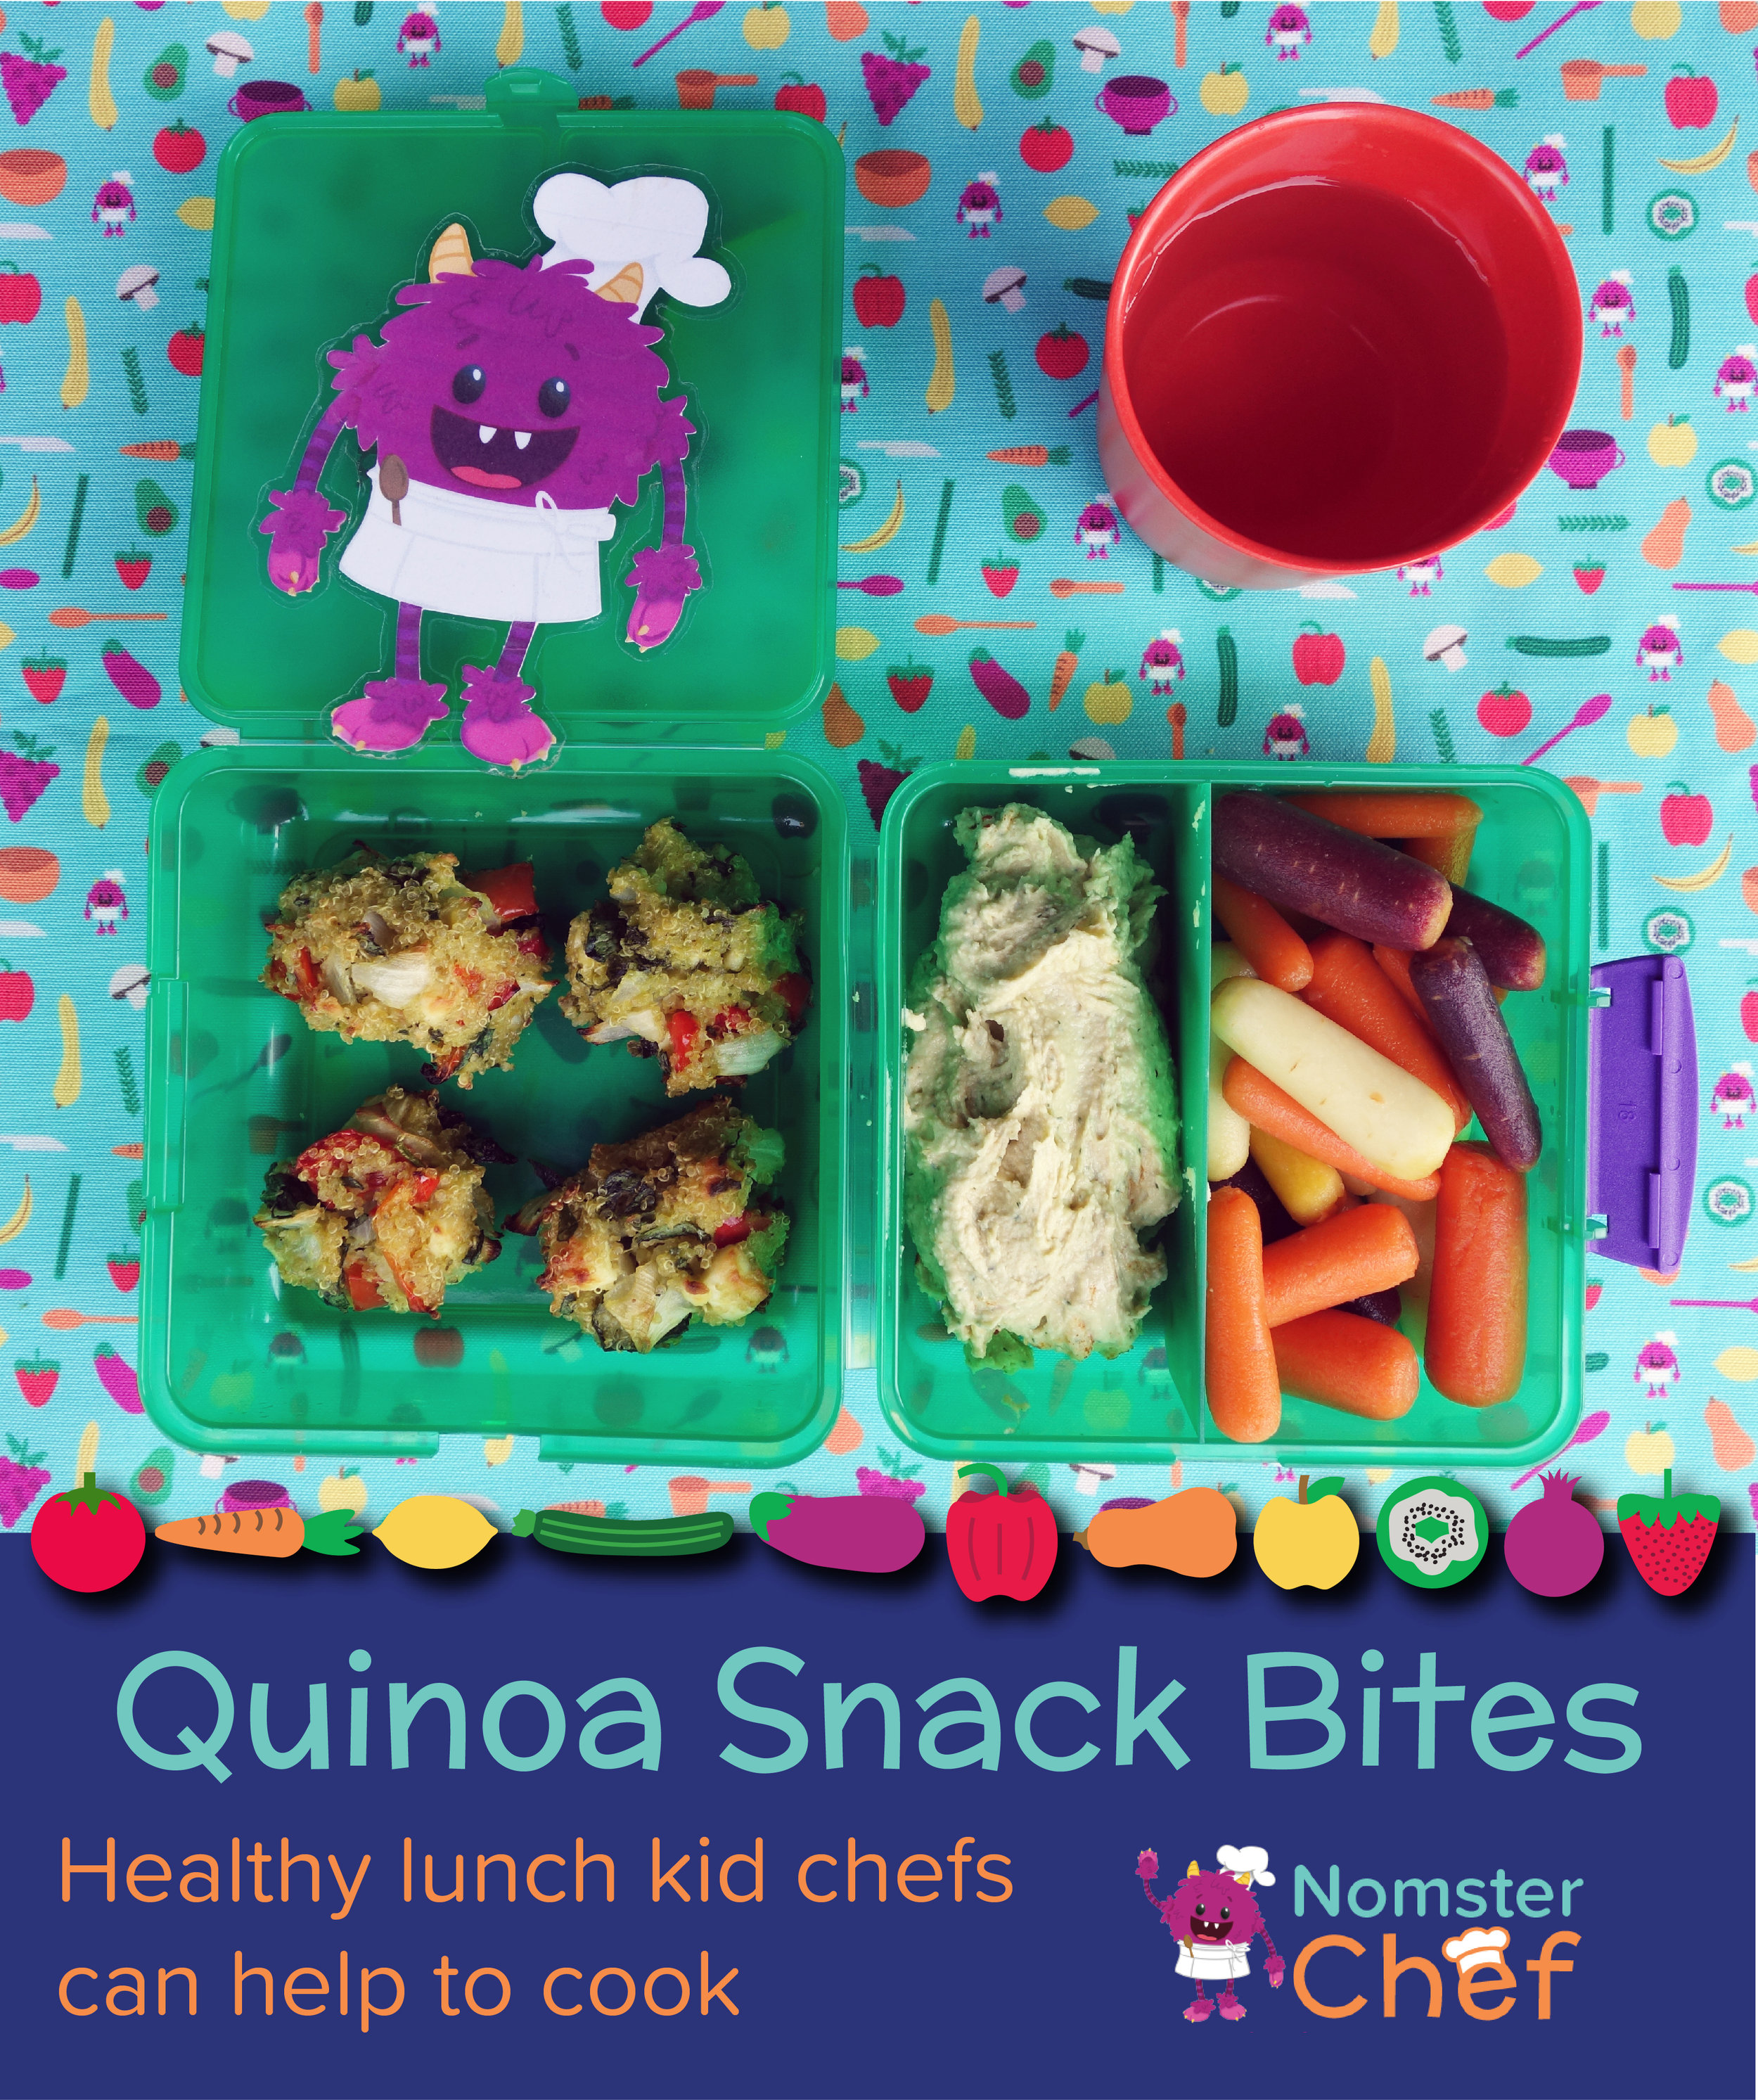 Q is for quinoa snack bites - Nomster Chef